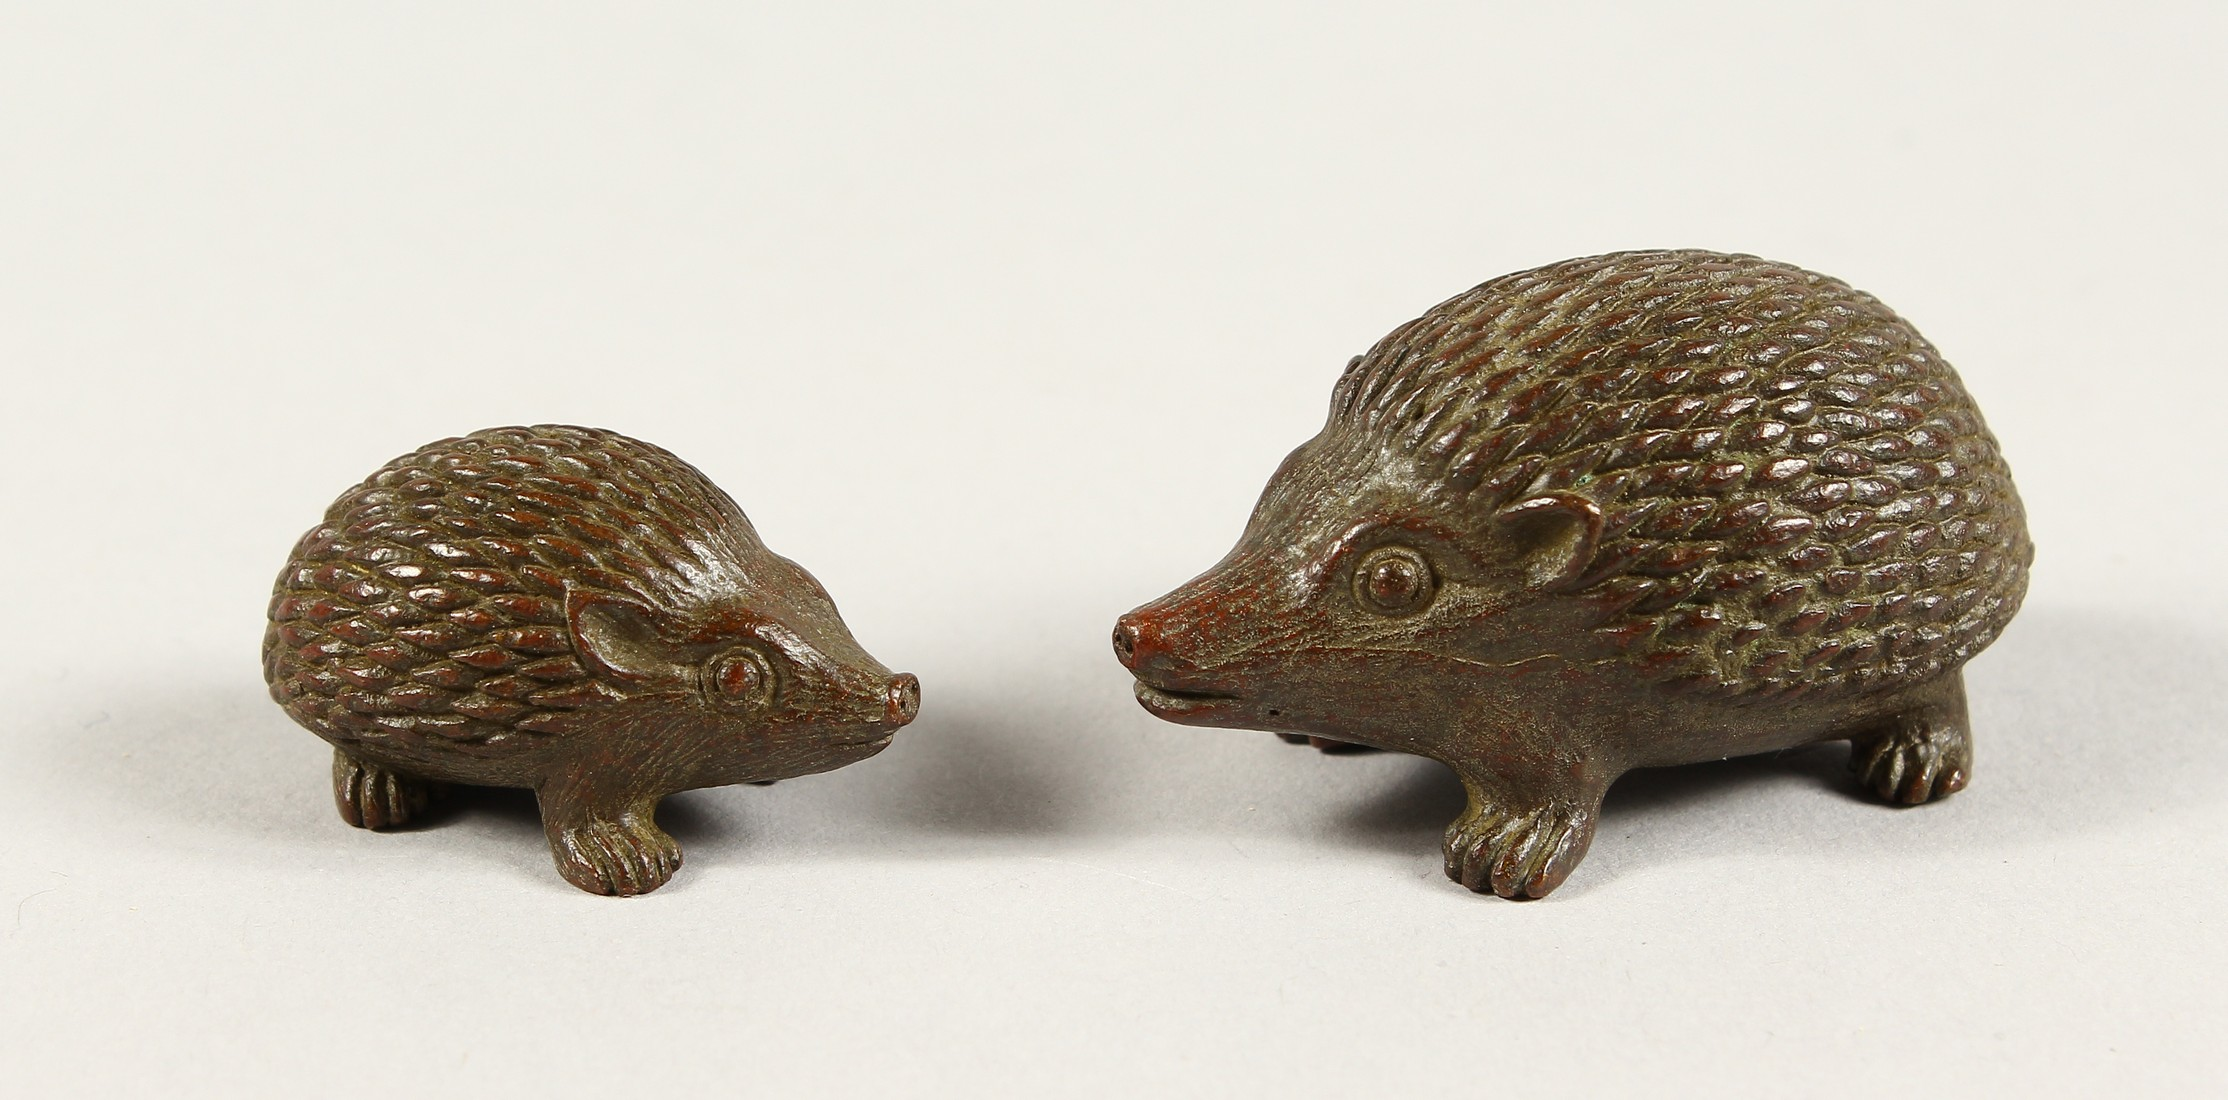 TWO JAPANESE BBRONZE HEDGEHOGS 2ins & 1.5ins long - Image 2 of 4